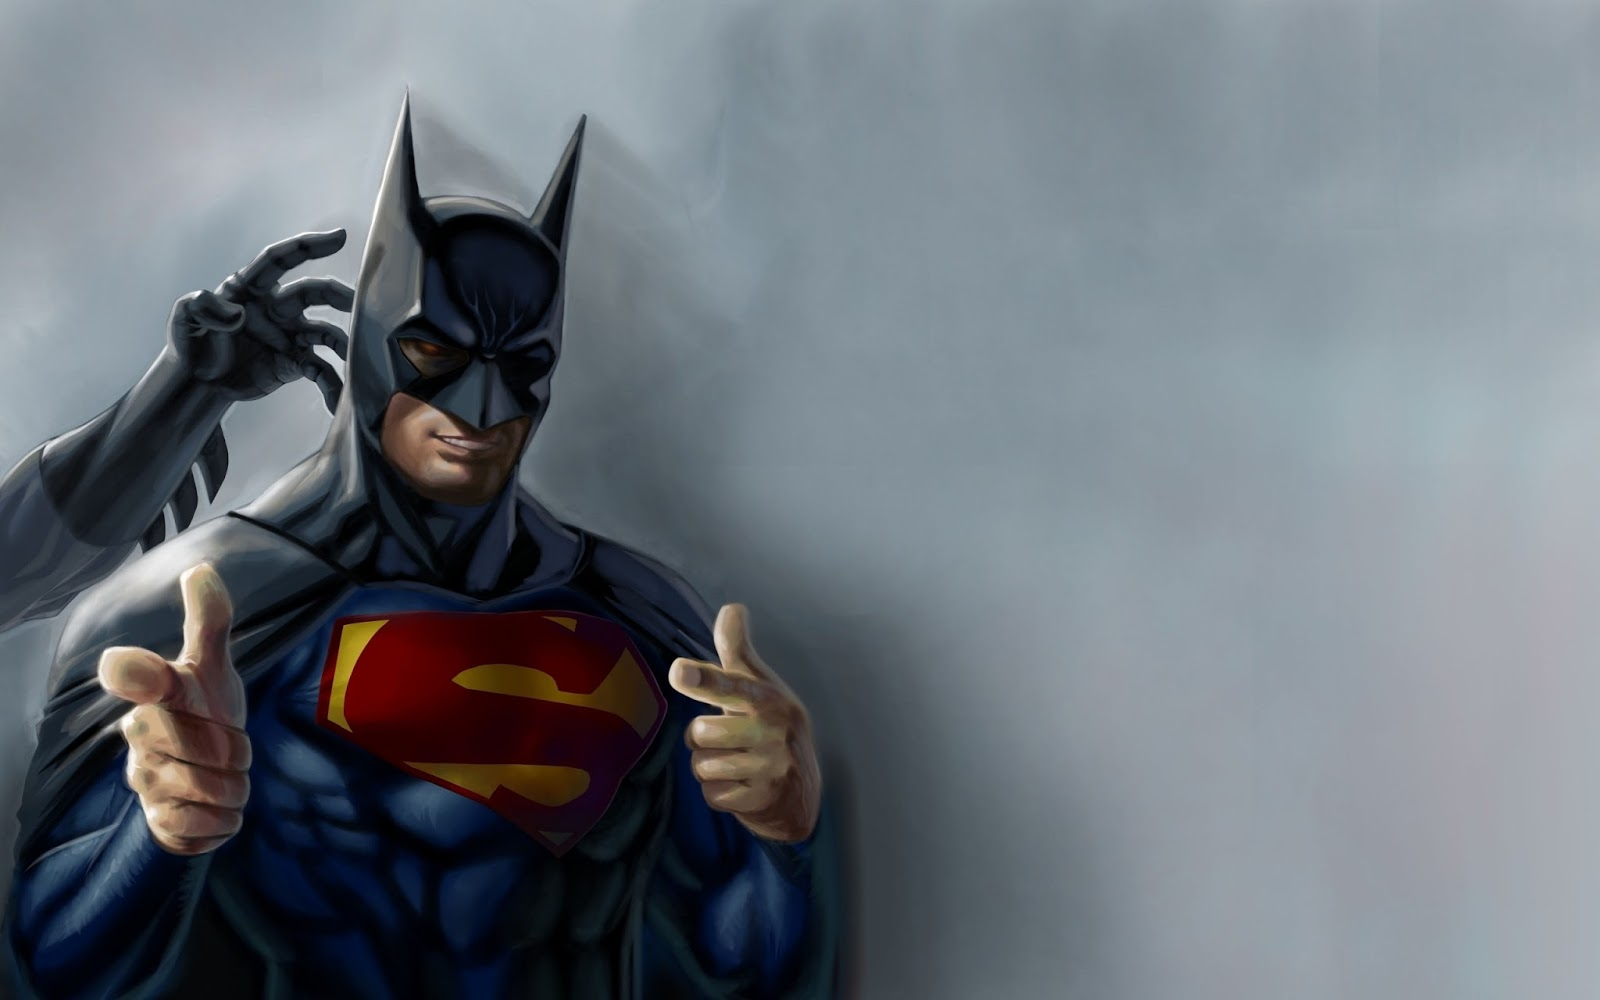 Batman DC Comic Heroes Superhero Funny Parody HD Wallpaper i3 1600x1000